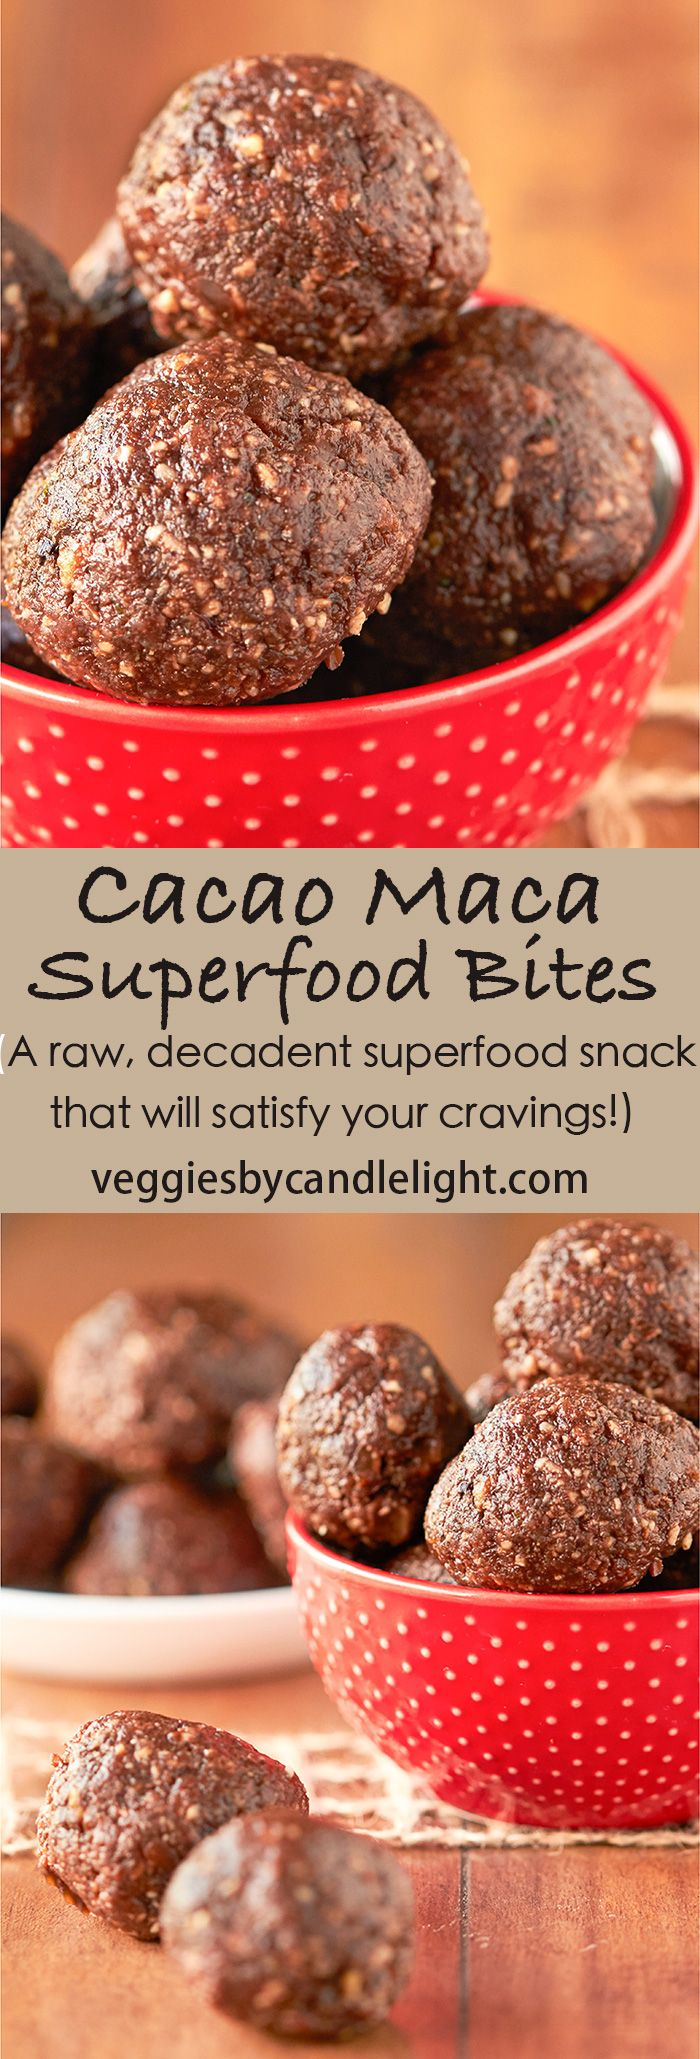 Cacao Maca Energy Bites - Looking for a raw, decadent superfood snack that will satisfy your cravings? These raw cacao maca superfood bites are a dream come true!